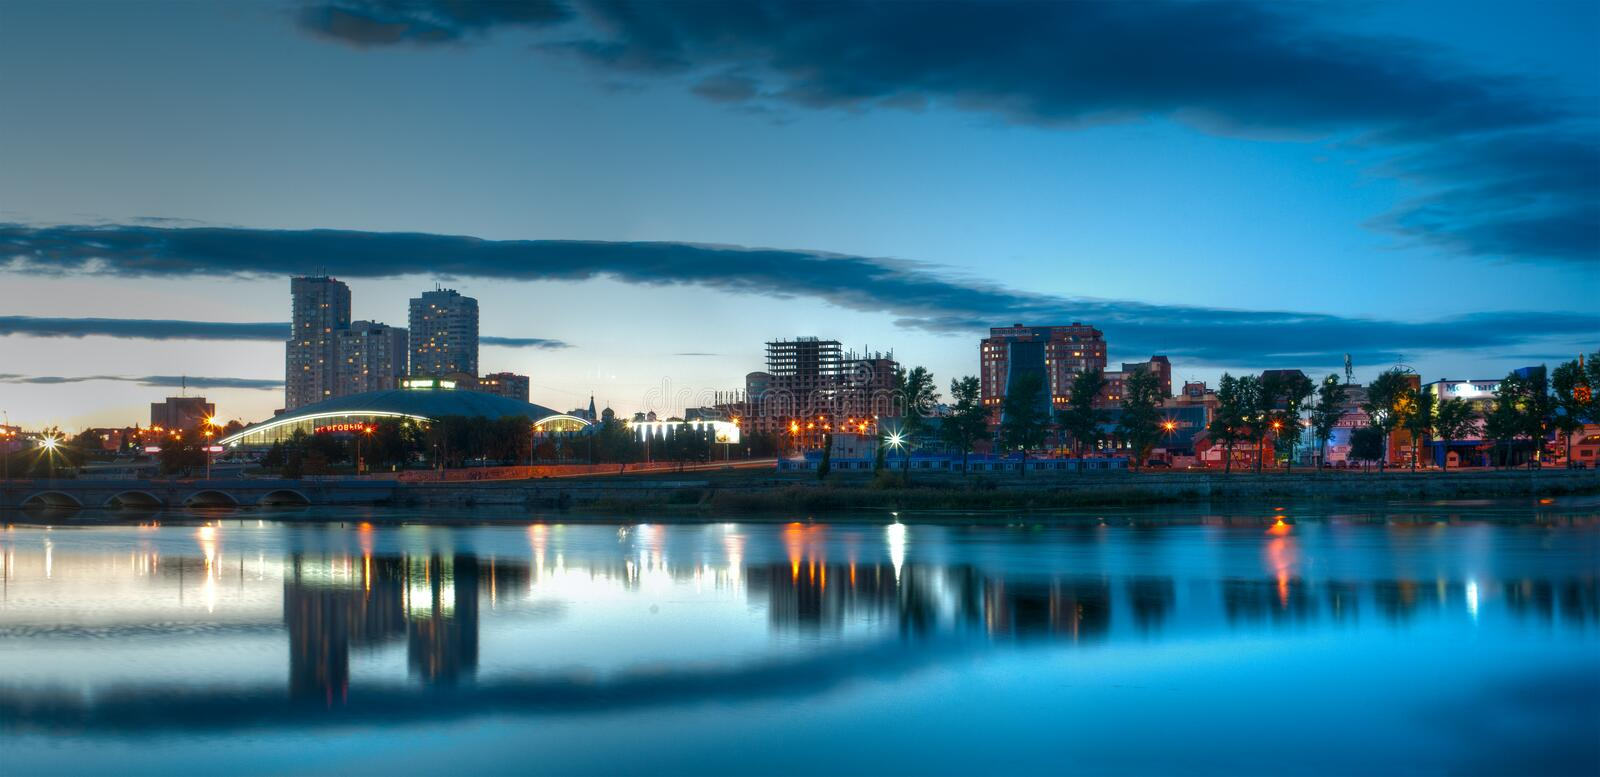 Evening panorama of the Miass River embankment, Chelyabinsk, September 2017. Editorial use only. On the banks of the Miass River there are the Shopping Center royalty free stock images